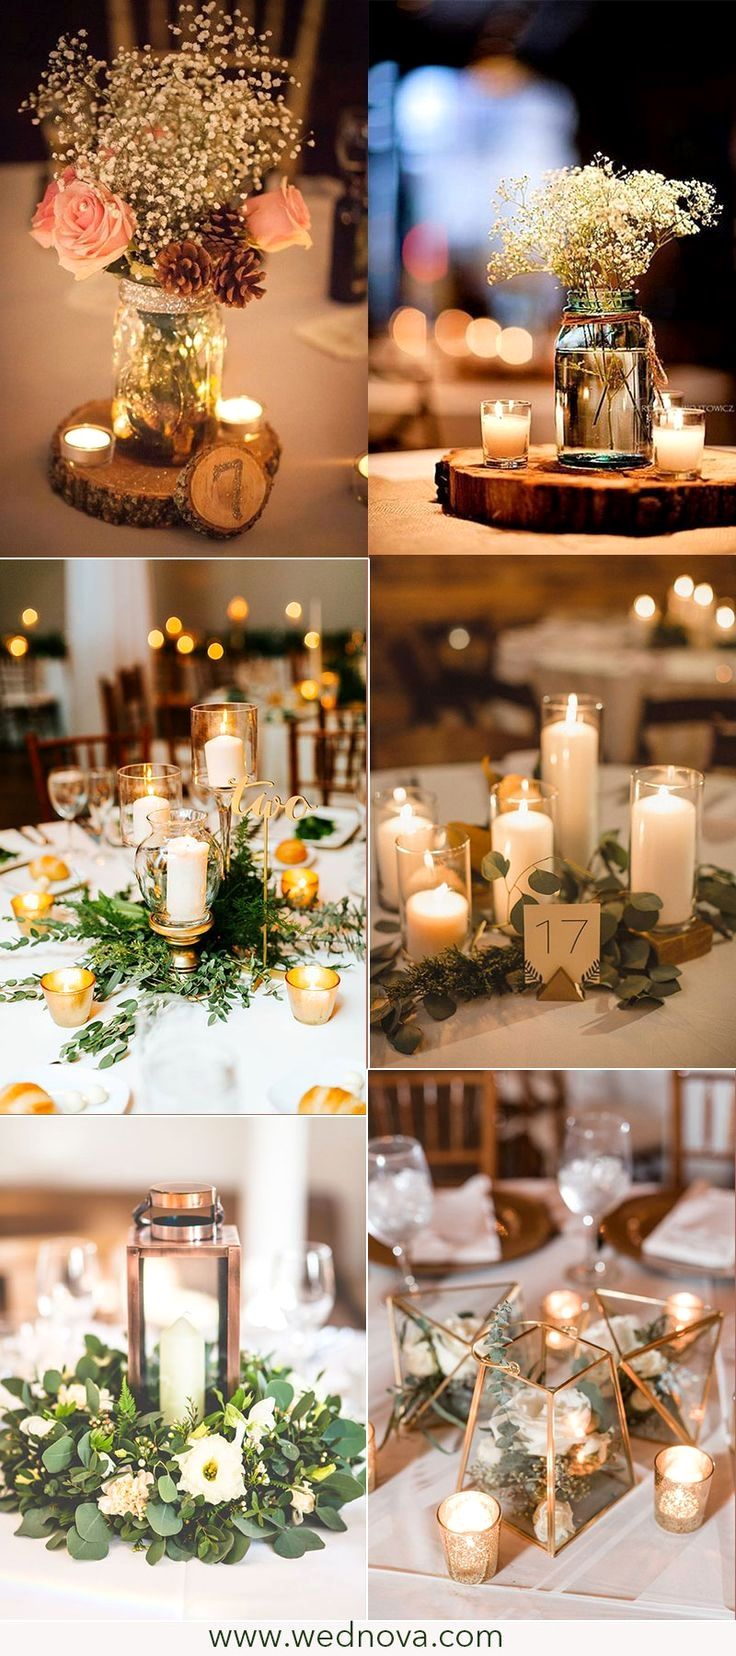 New Rustic Wedding Decoration Ideas Rustic With Images Vintage Wedding Centerpieces Greenery Wedding Decor Wedding Table Decorations